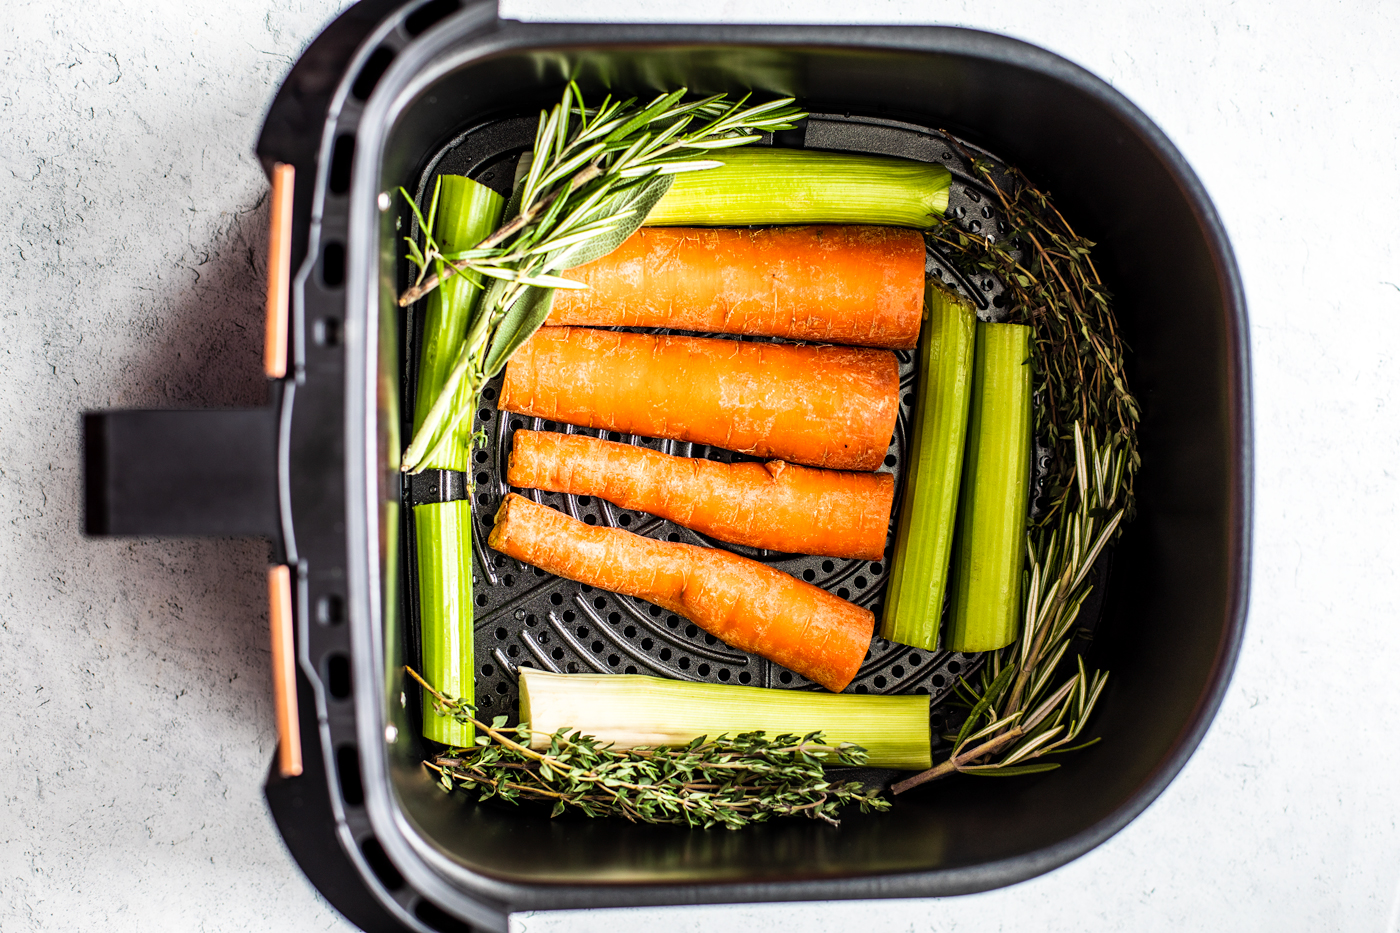 Air fryer basket with carrots, celery, and leeks cut into planks.